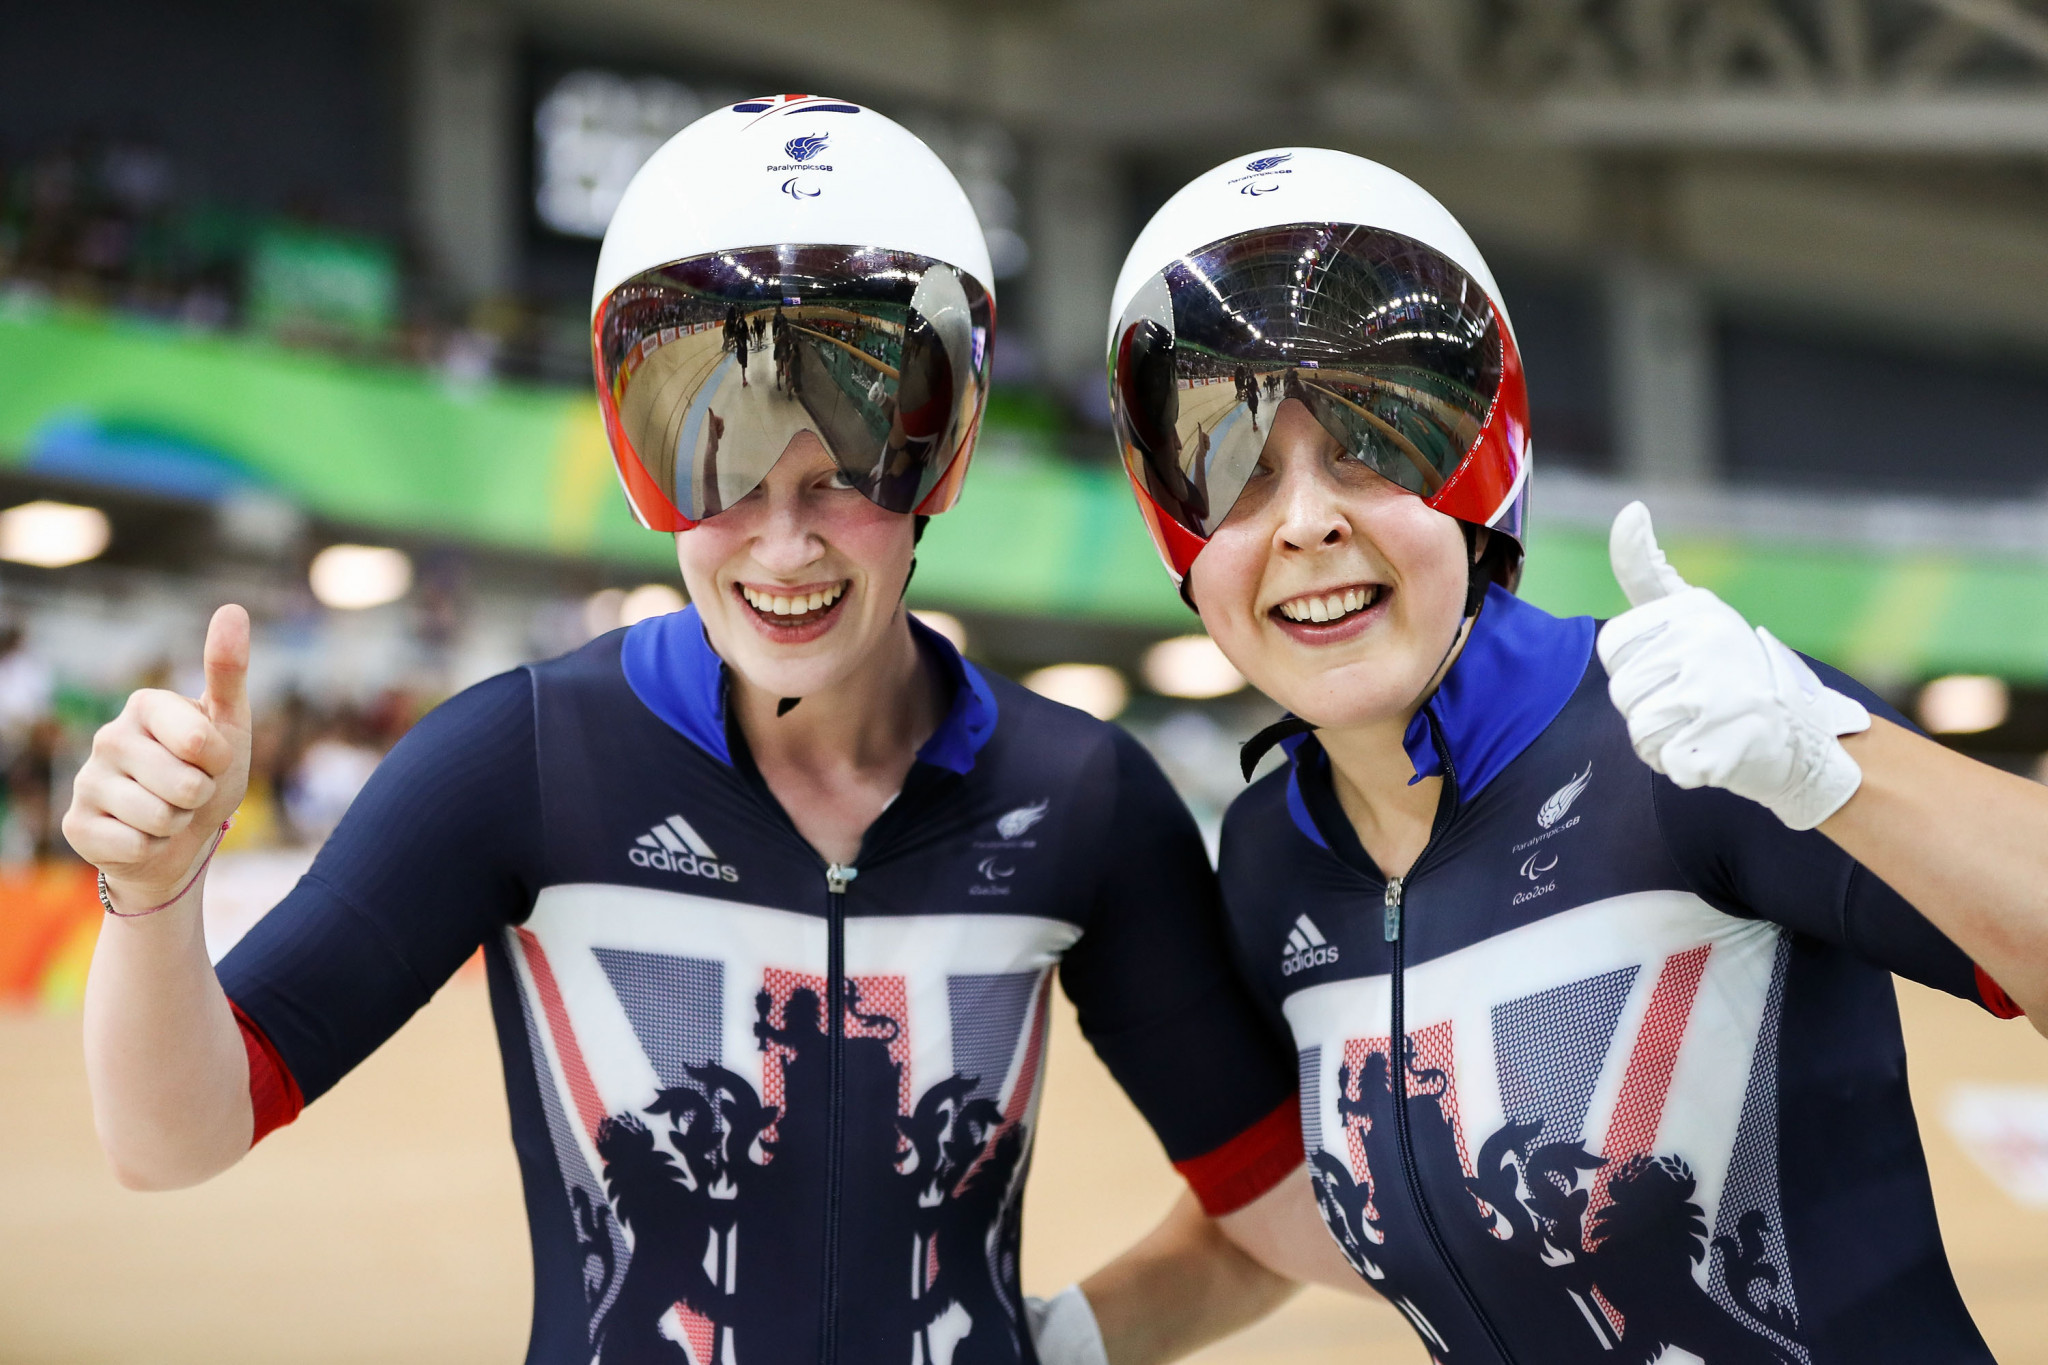 British pair break second world record on final day of Para Cycling World Championships